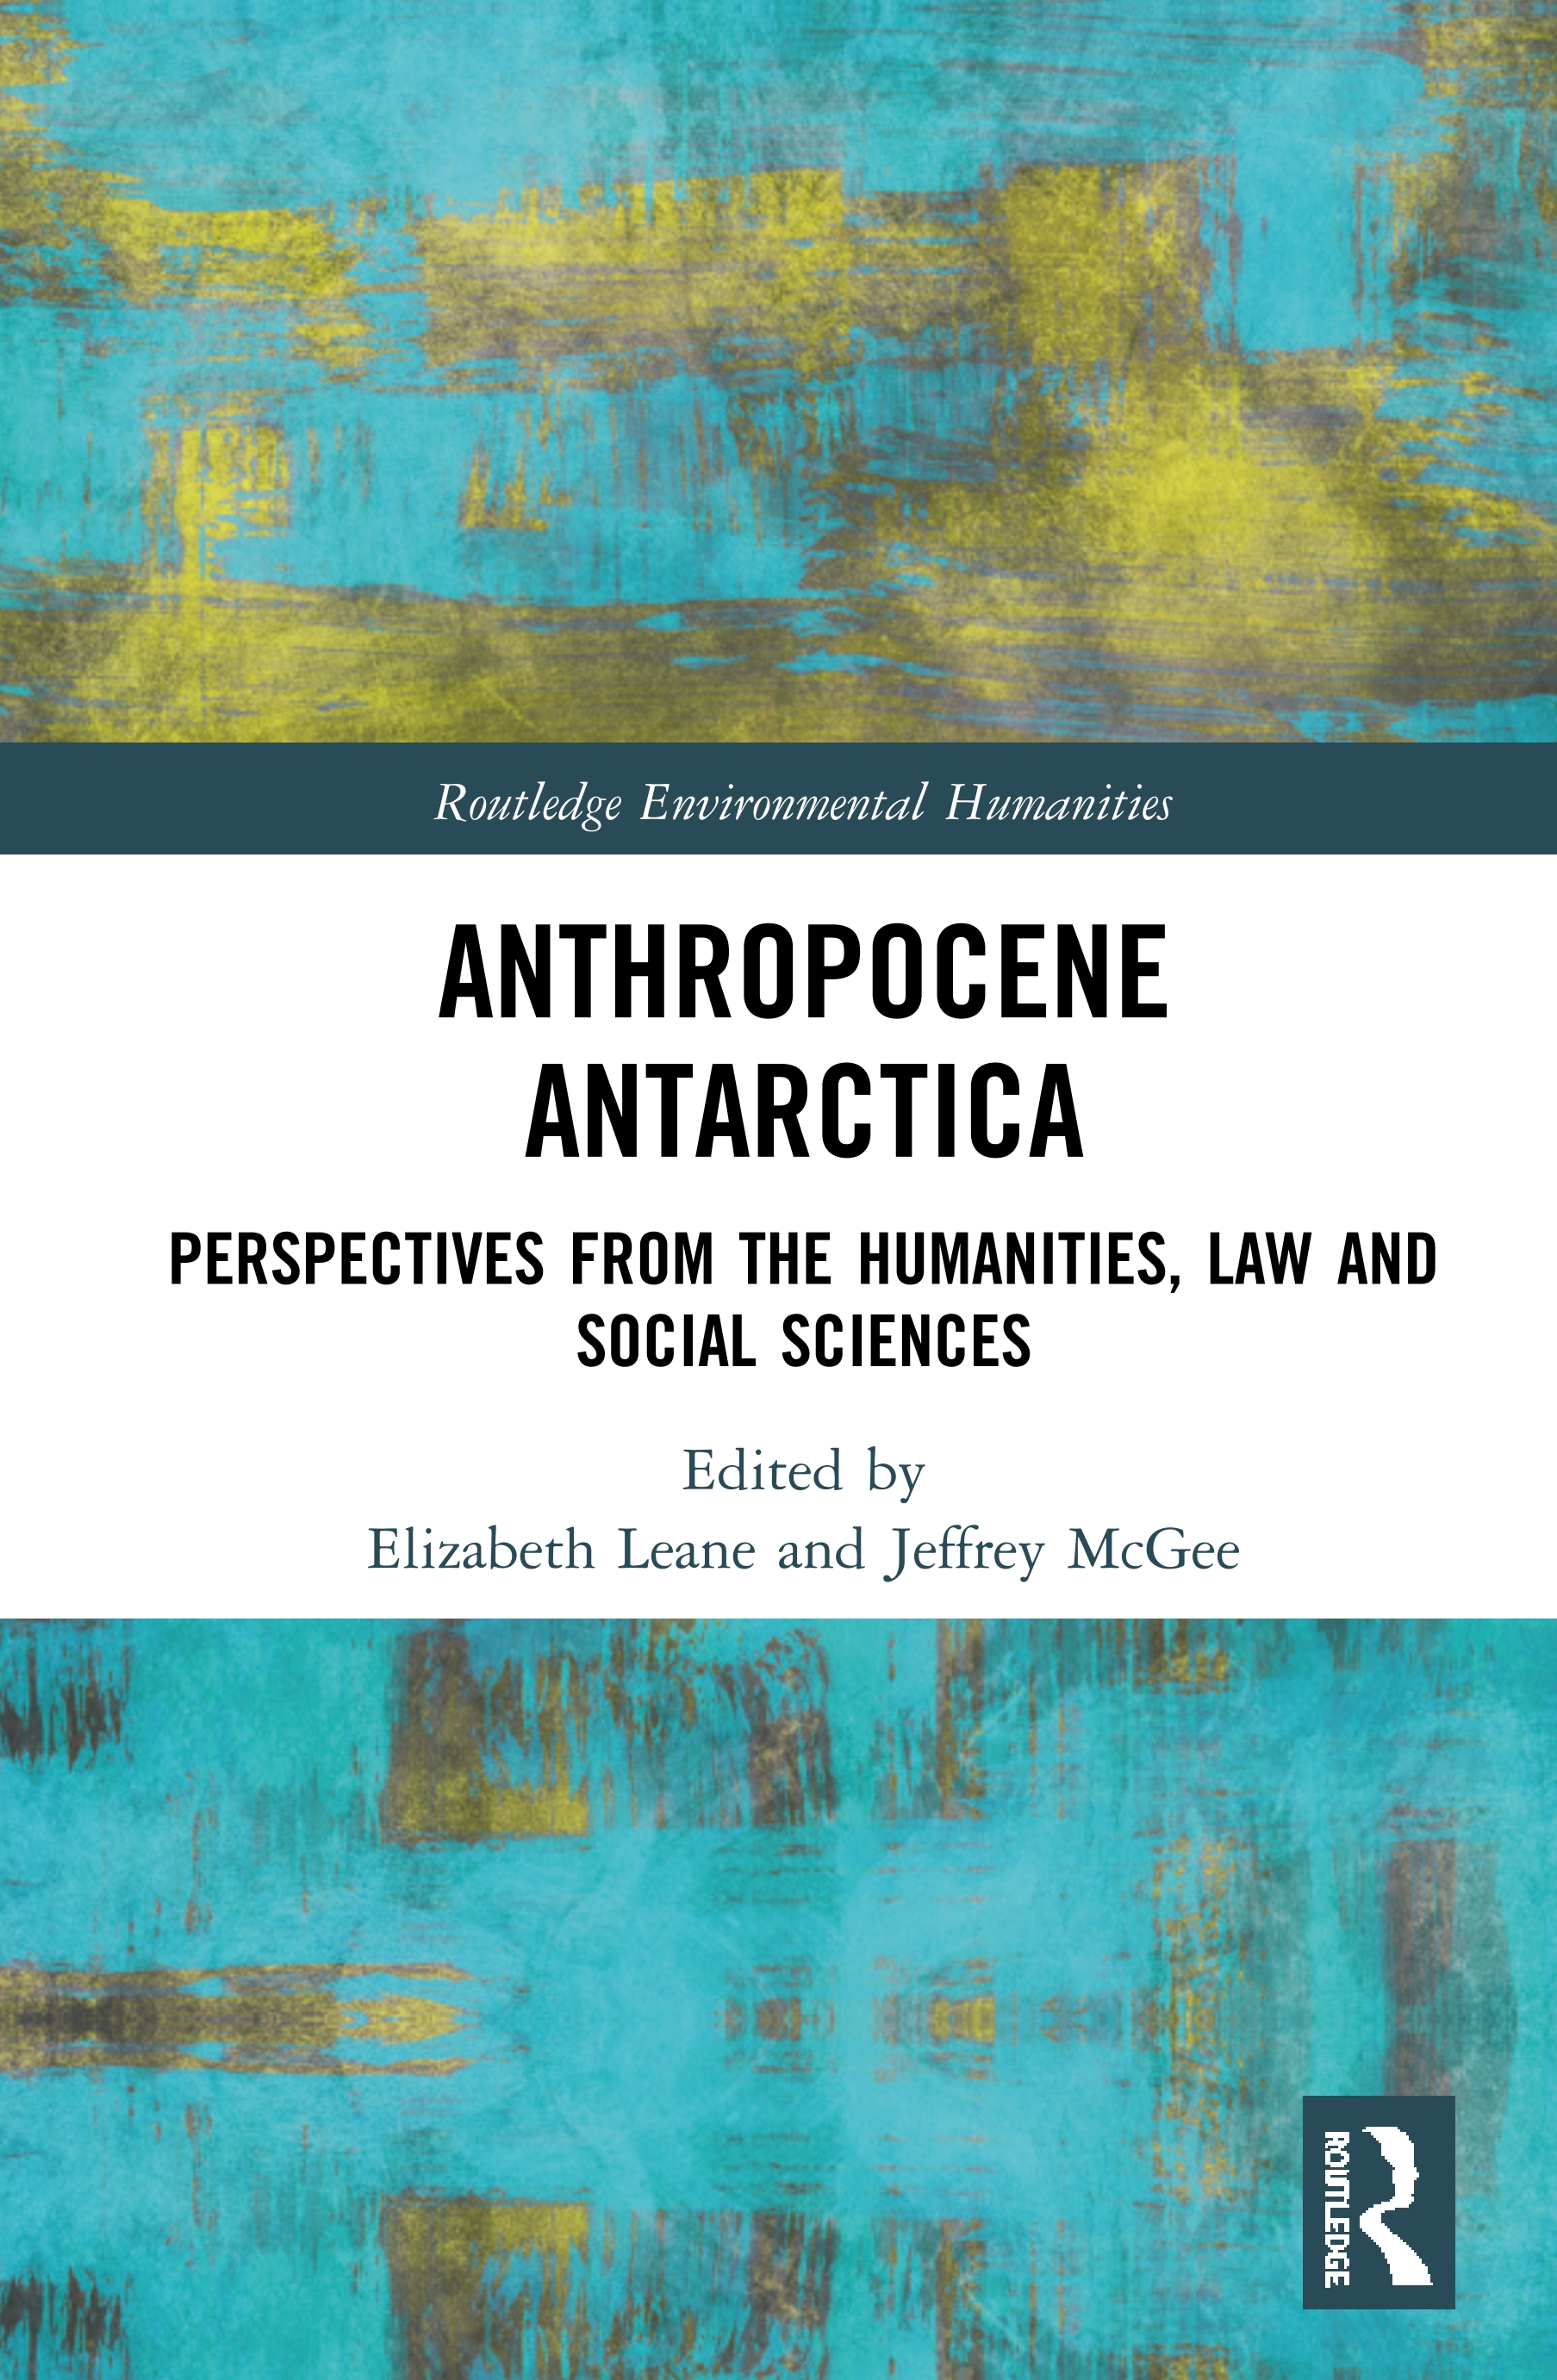 Anthropocene Antarctica: Perspectives from the Humanities, Law and Social Sciences book cover